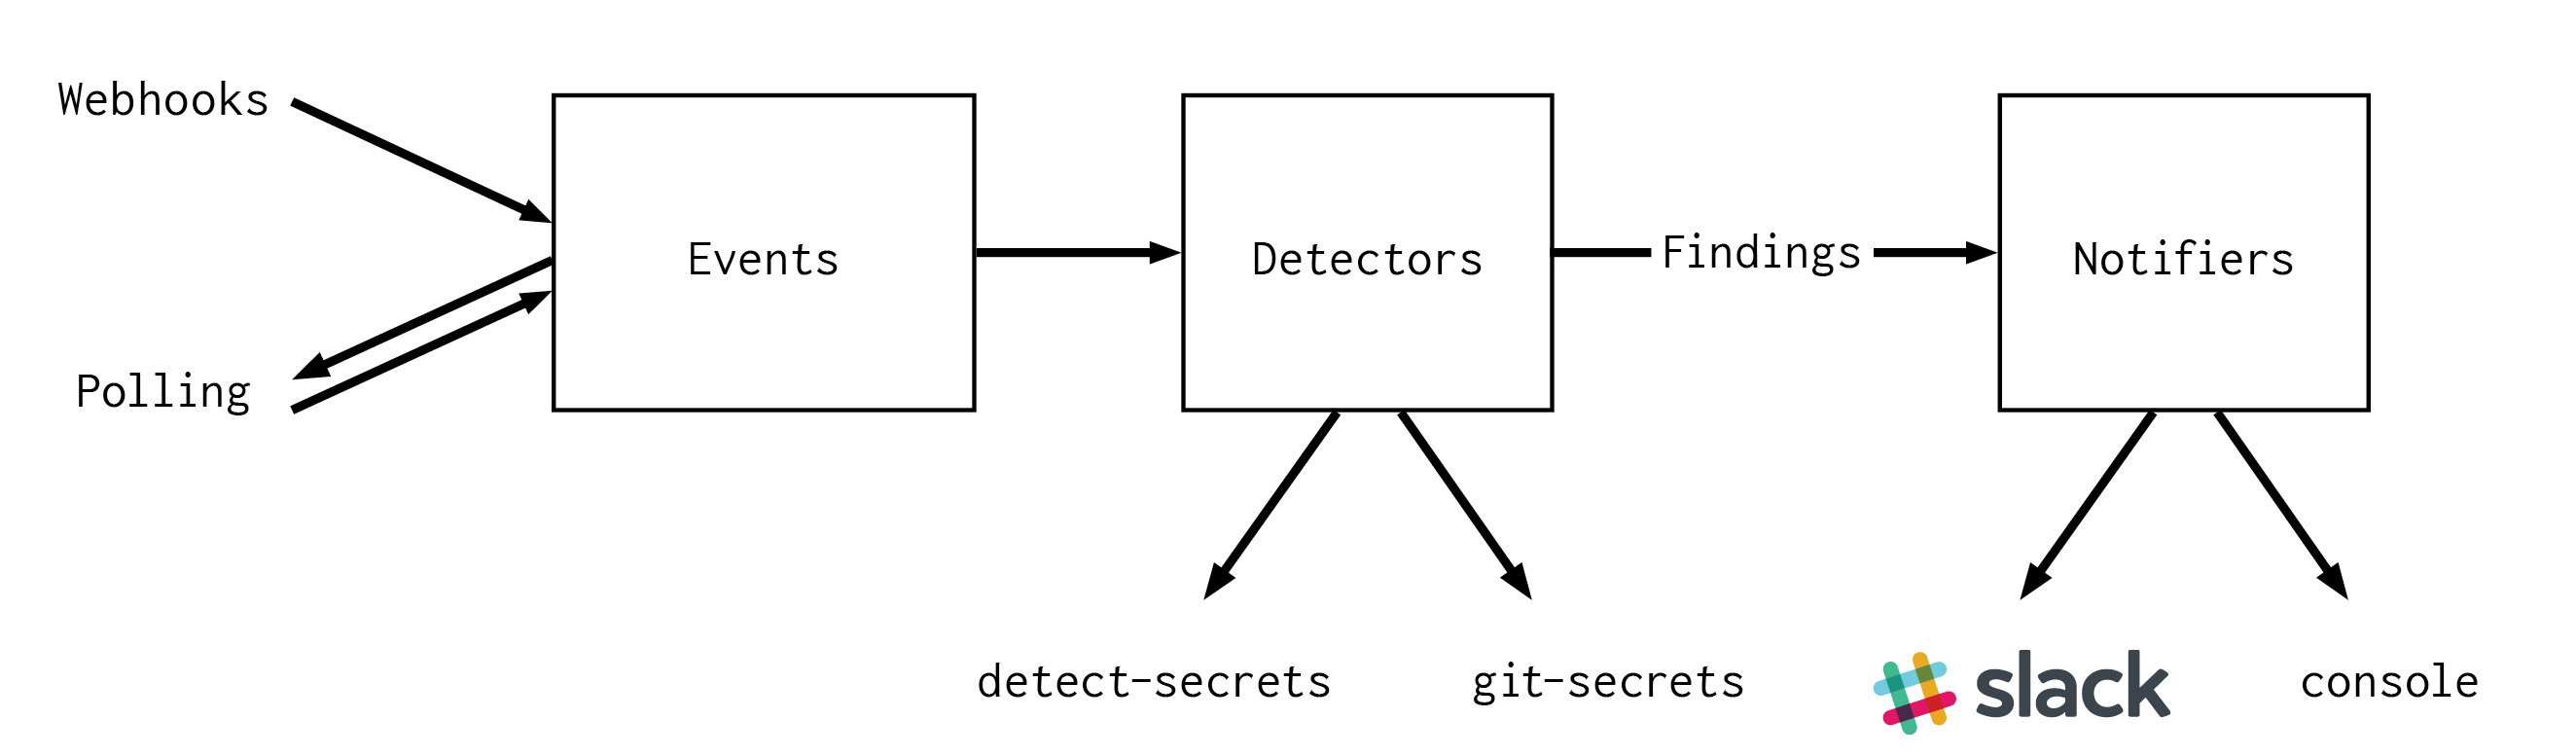 github-data-security-secret-bridge-2648x77g